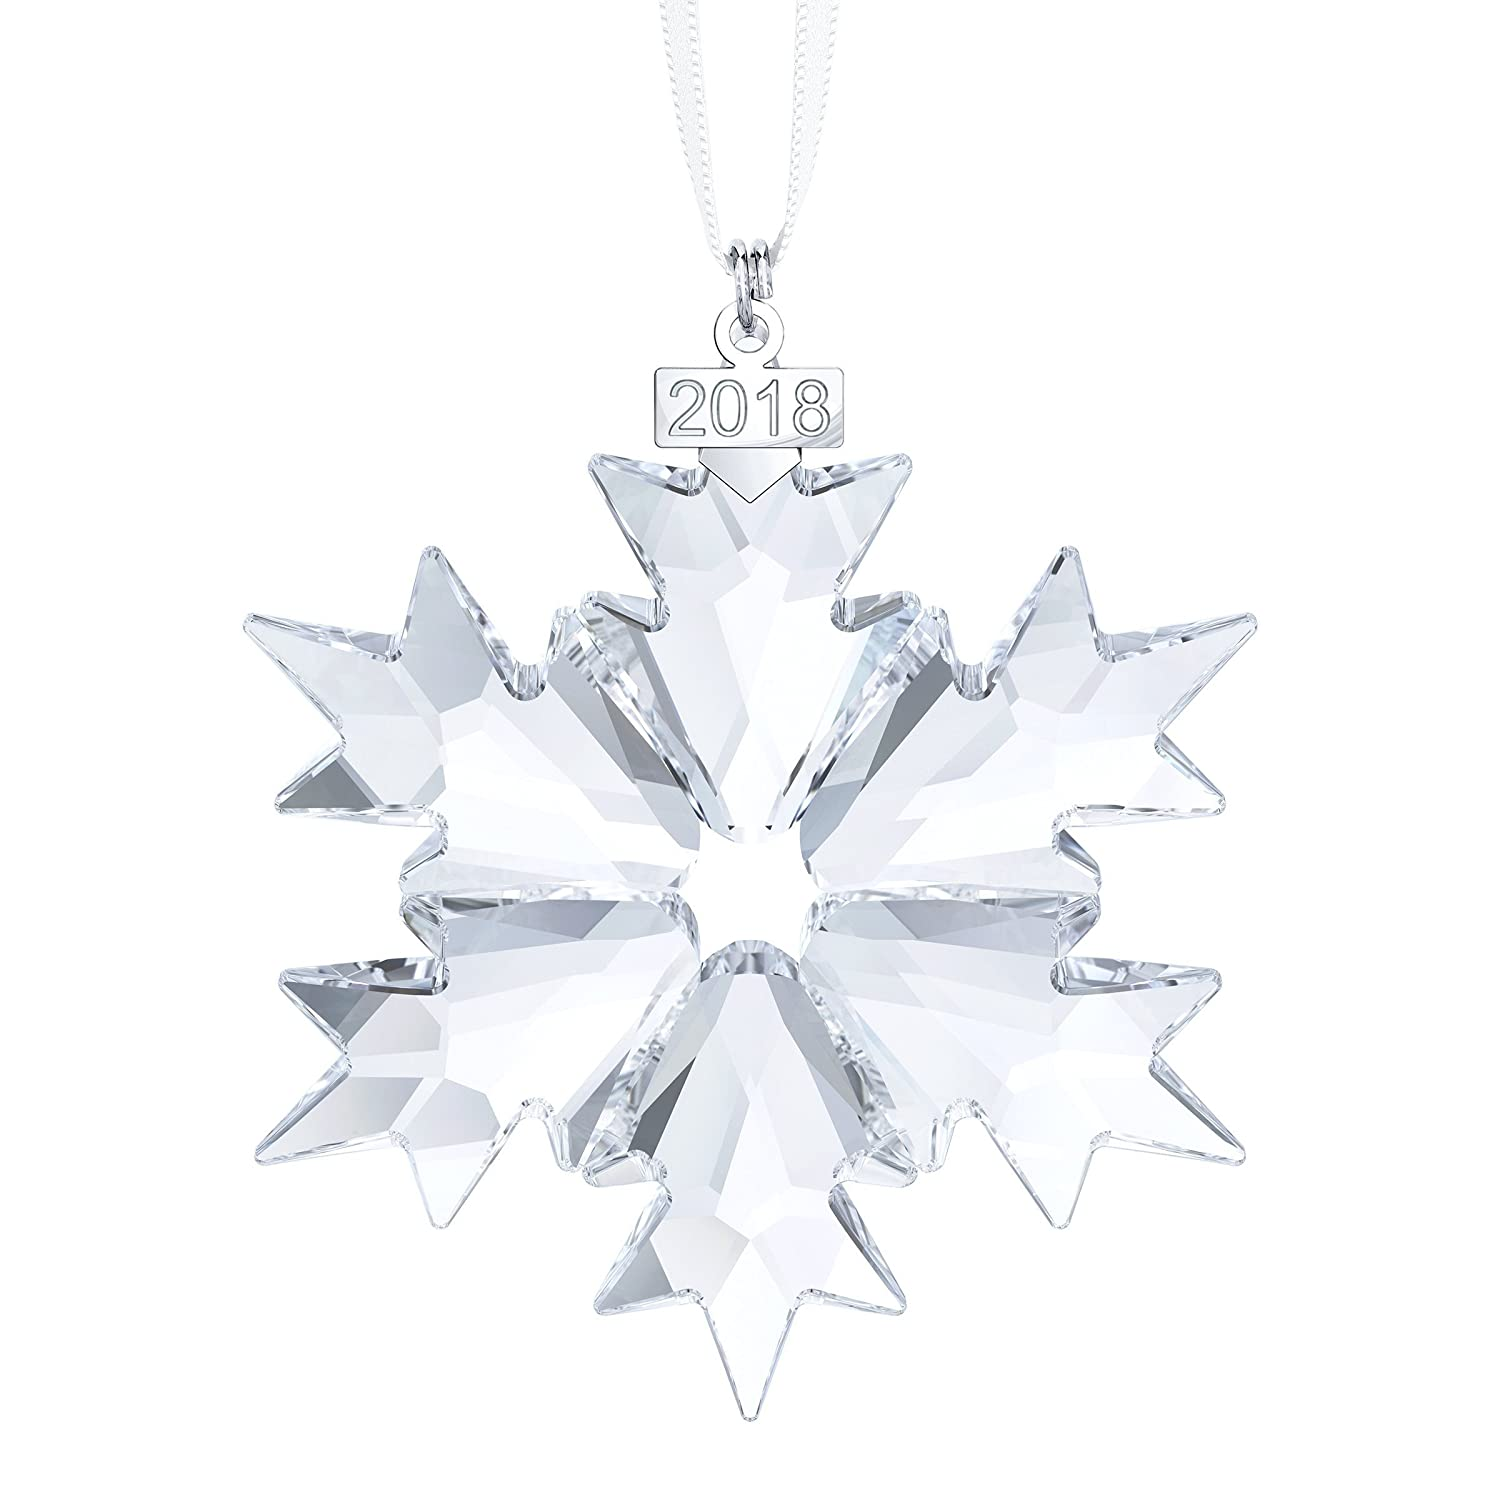 Swarovski 2018 Annual Edition Snowflake Ornament | 5301575